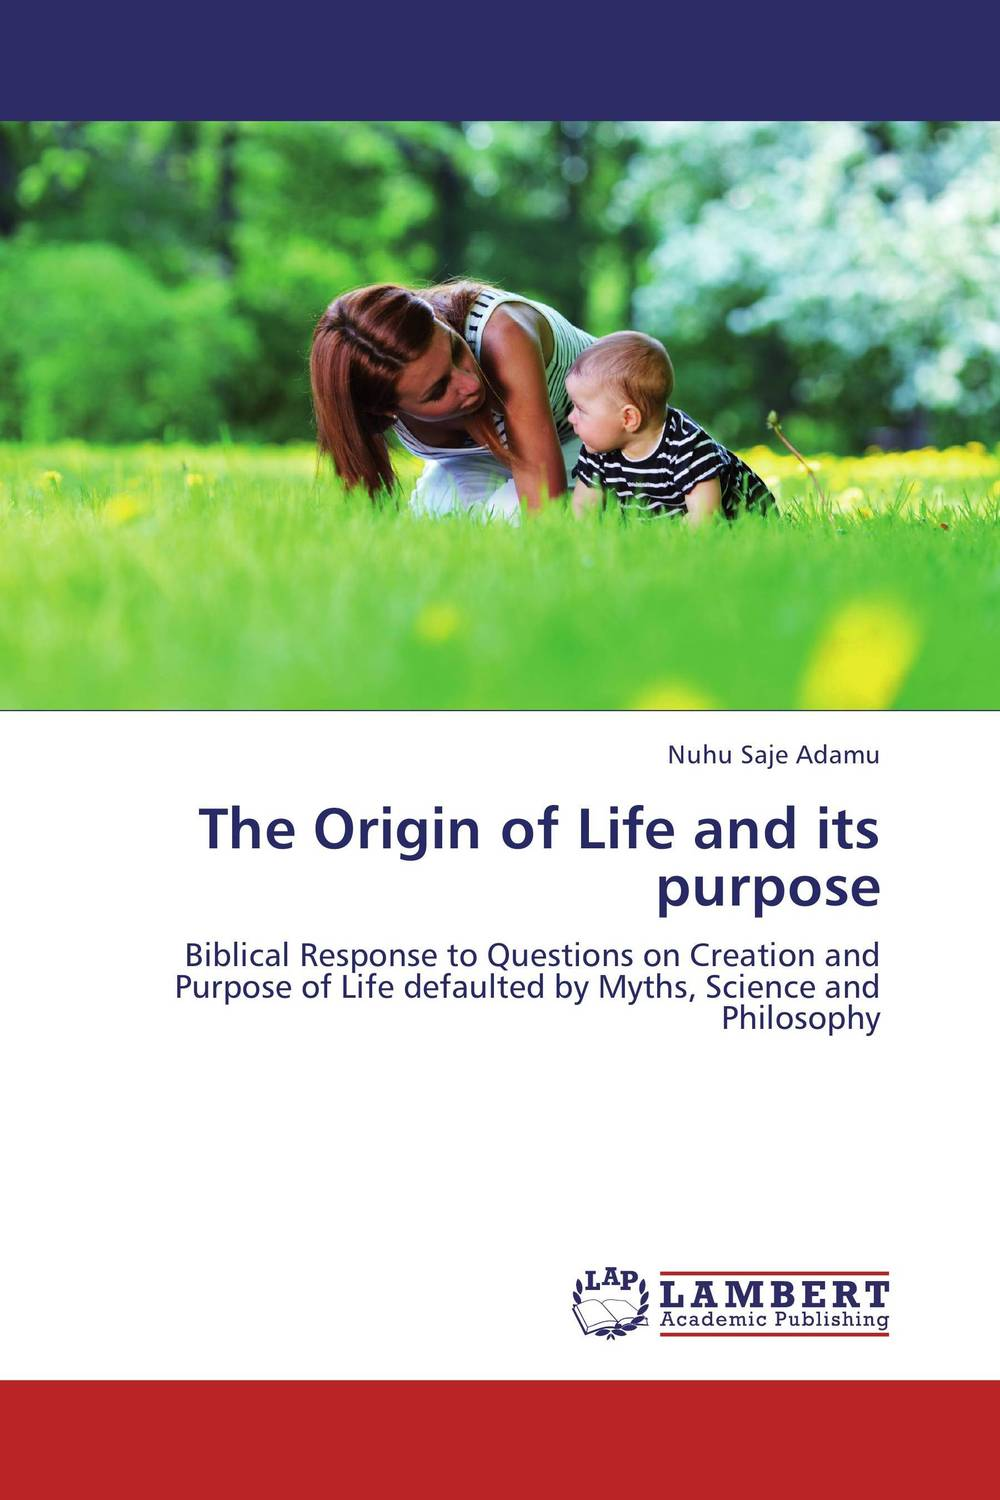 The Origin of Life and its purpose